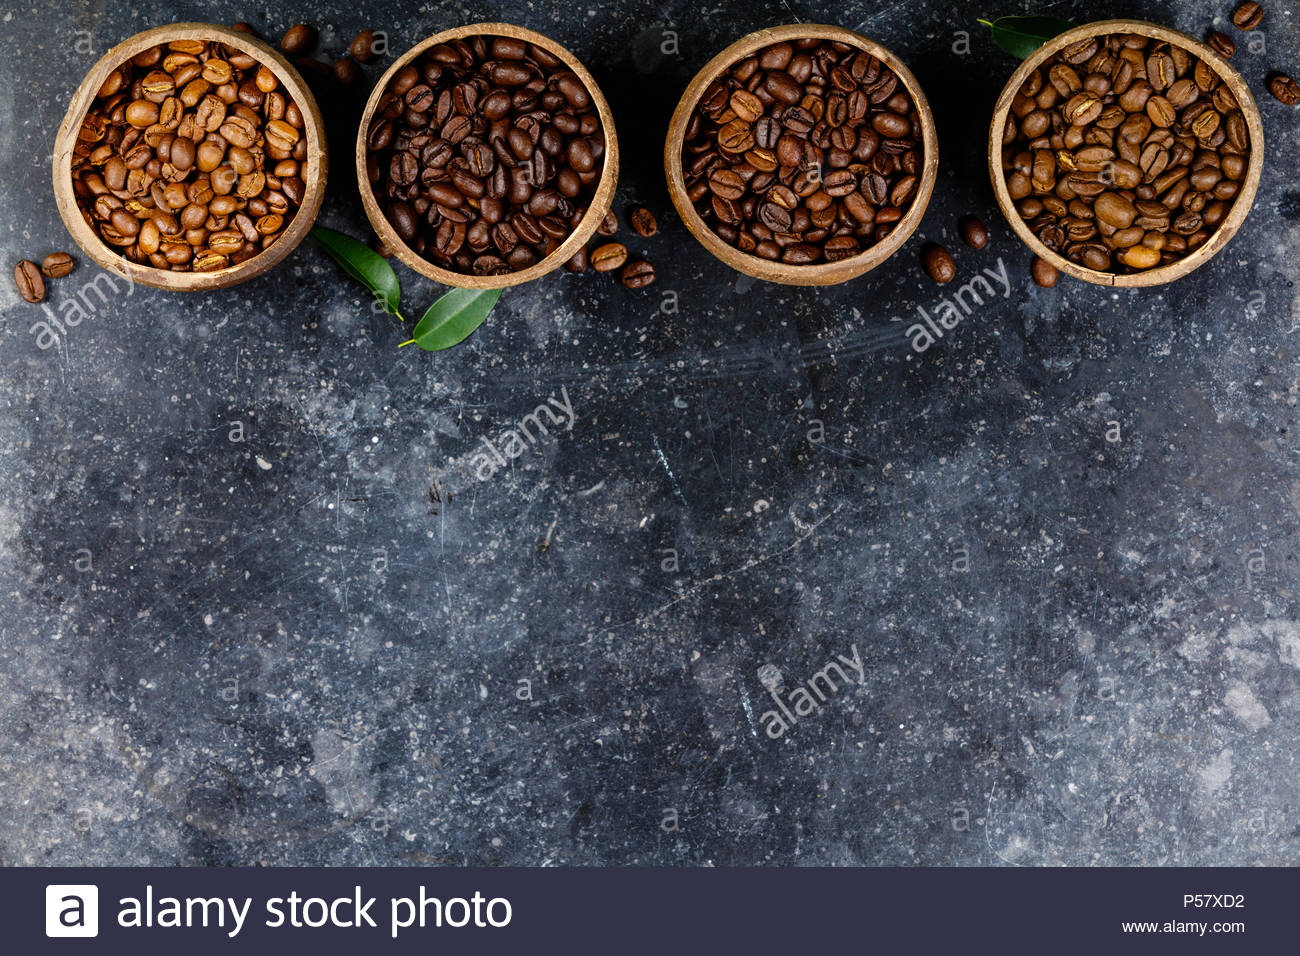 Four different varieties of coffee beans - Stock Image